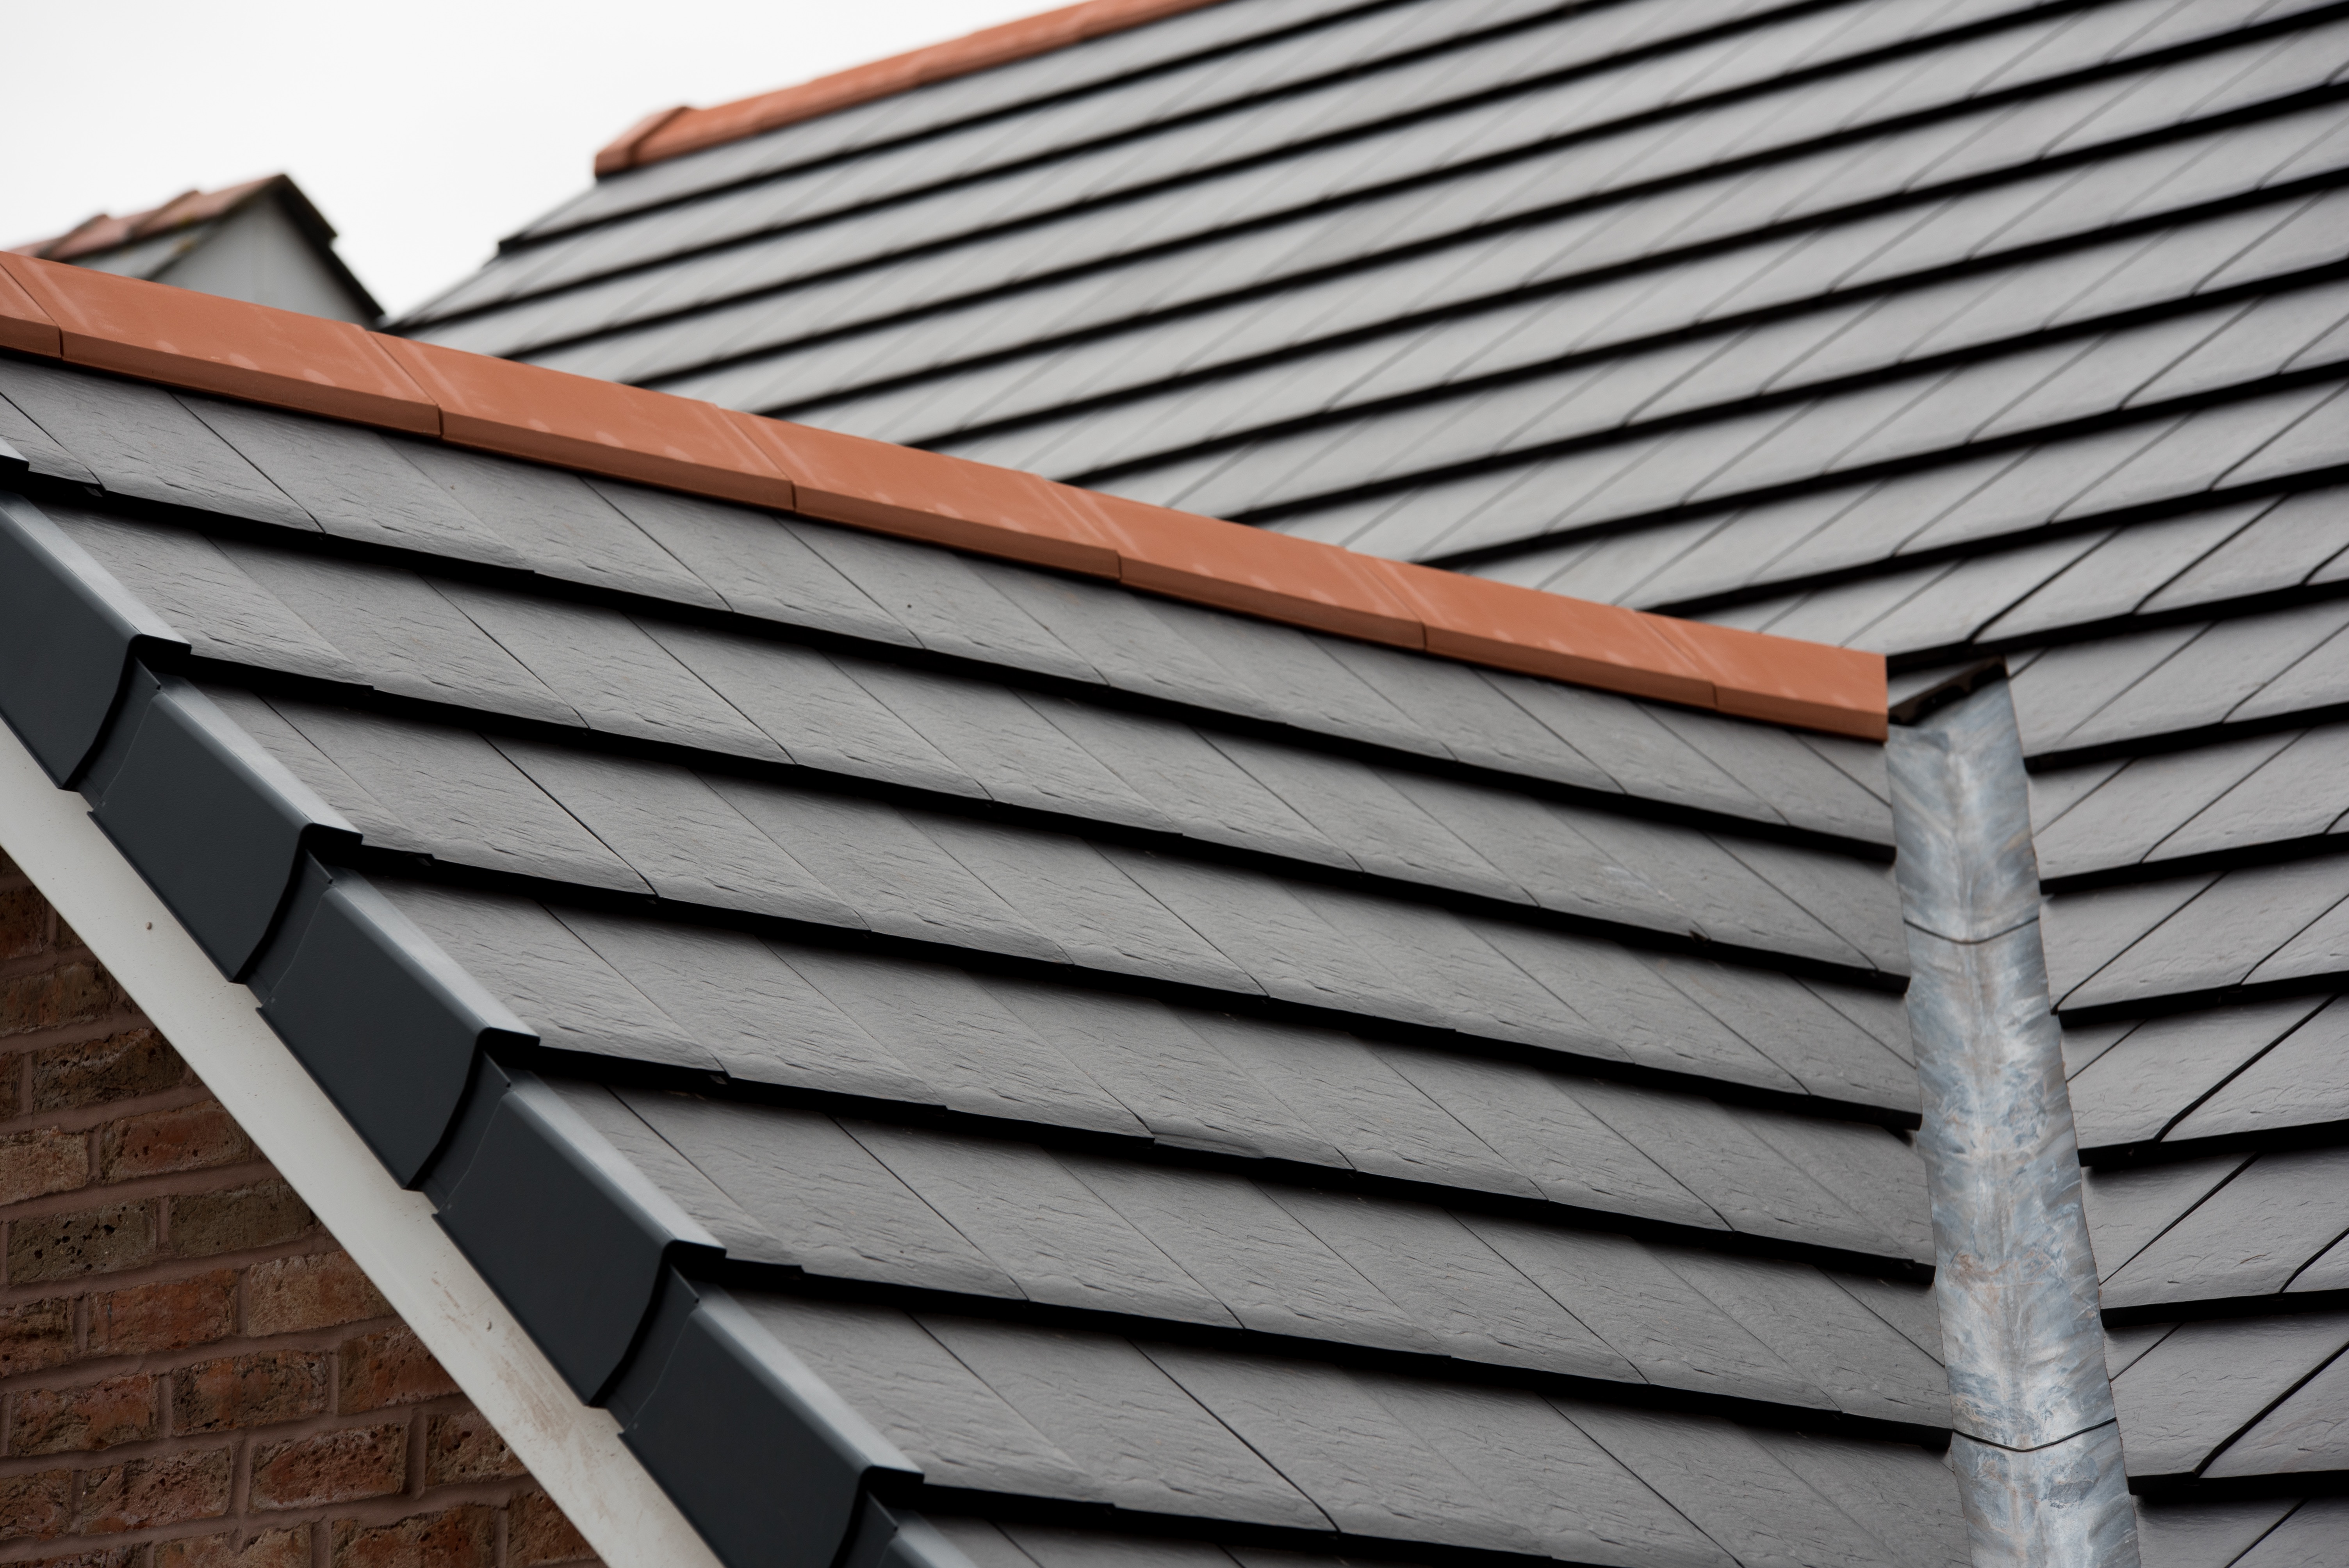 Verea slate effect clay tile and CS PL2 ridge tile